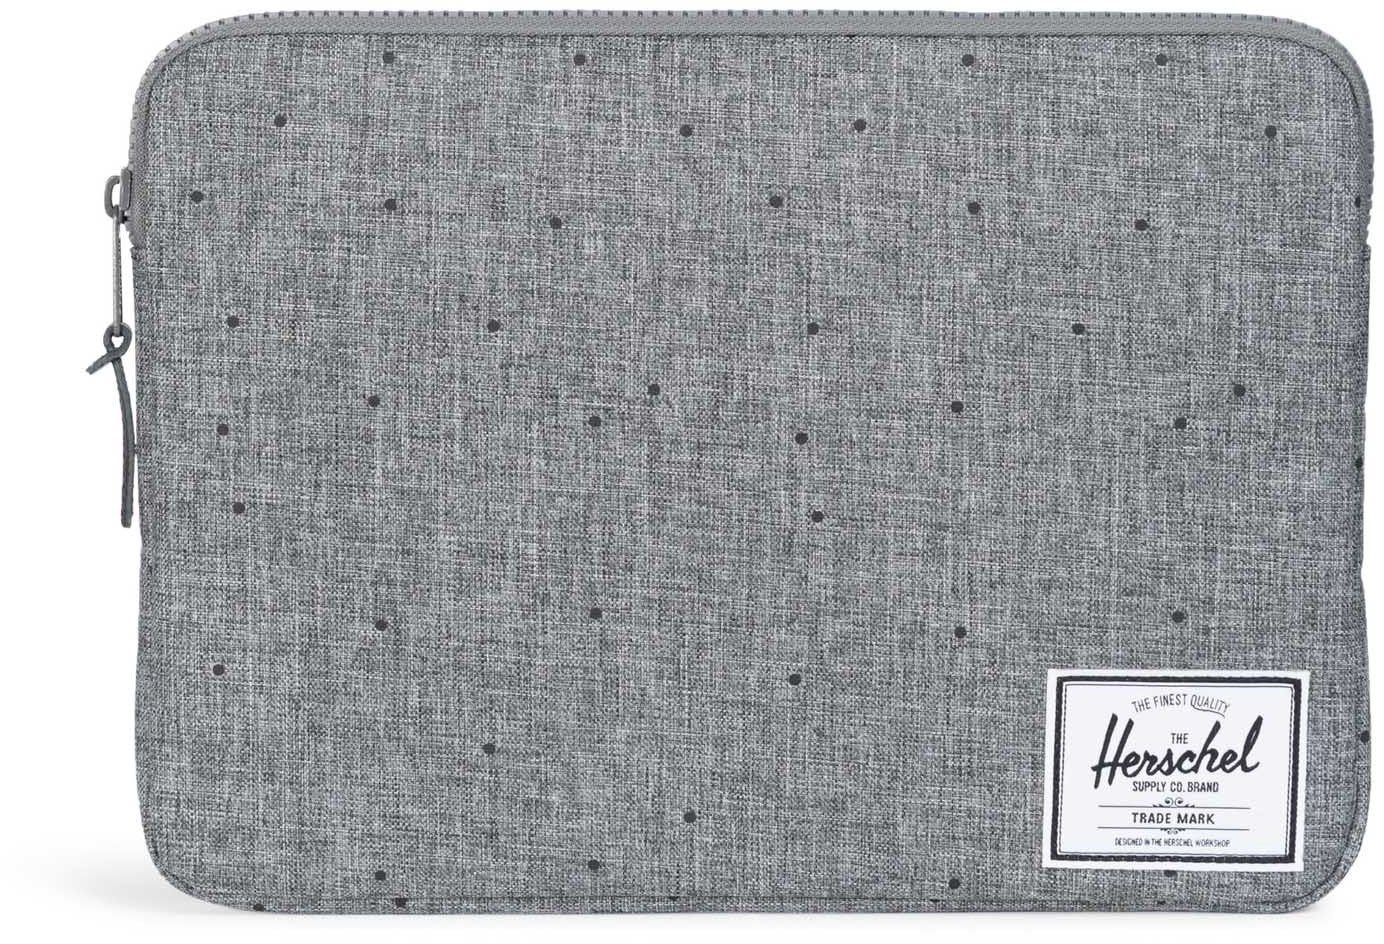 Herschel Notebook Hülle, »Anchor Sleeve, Macbook 13, Macbook Air/Pro, Scattered Raven, Crosshatch«